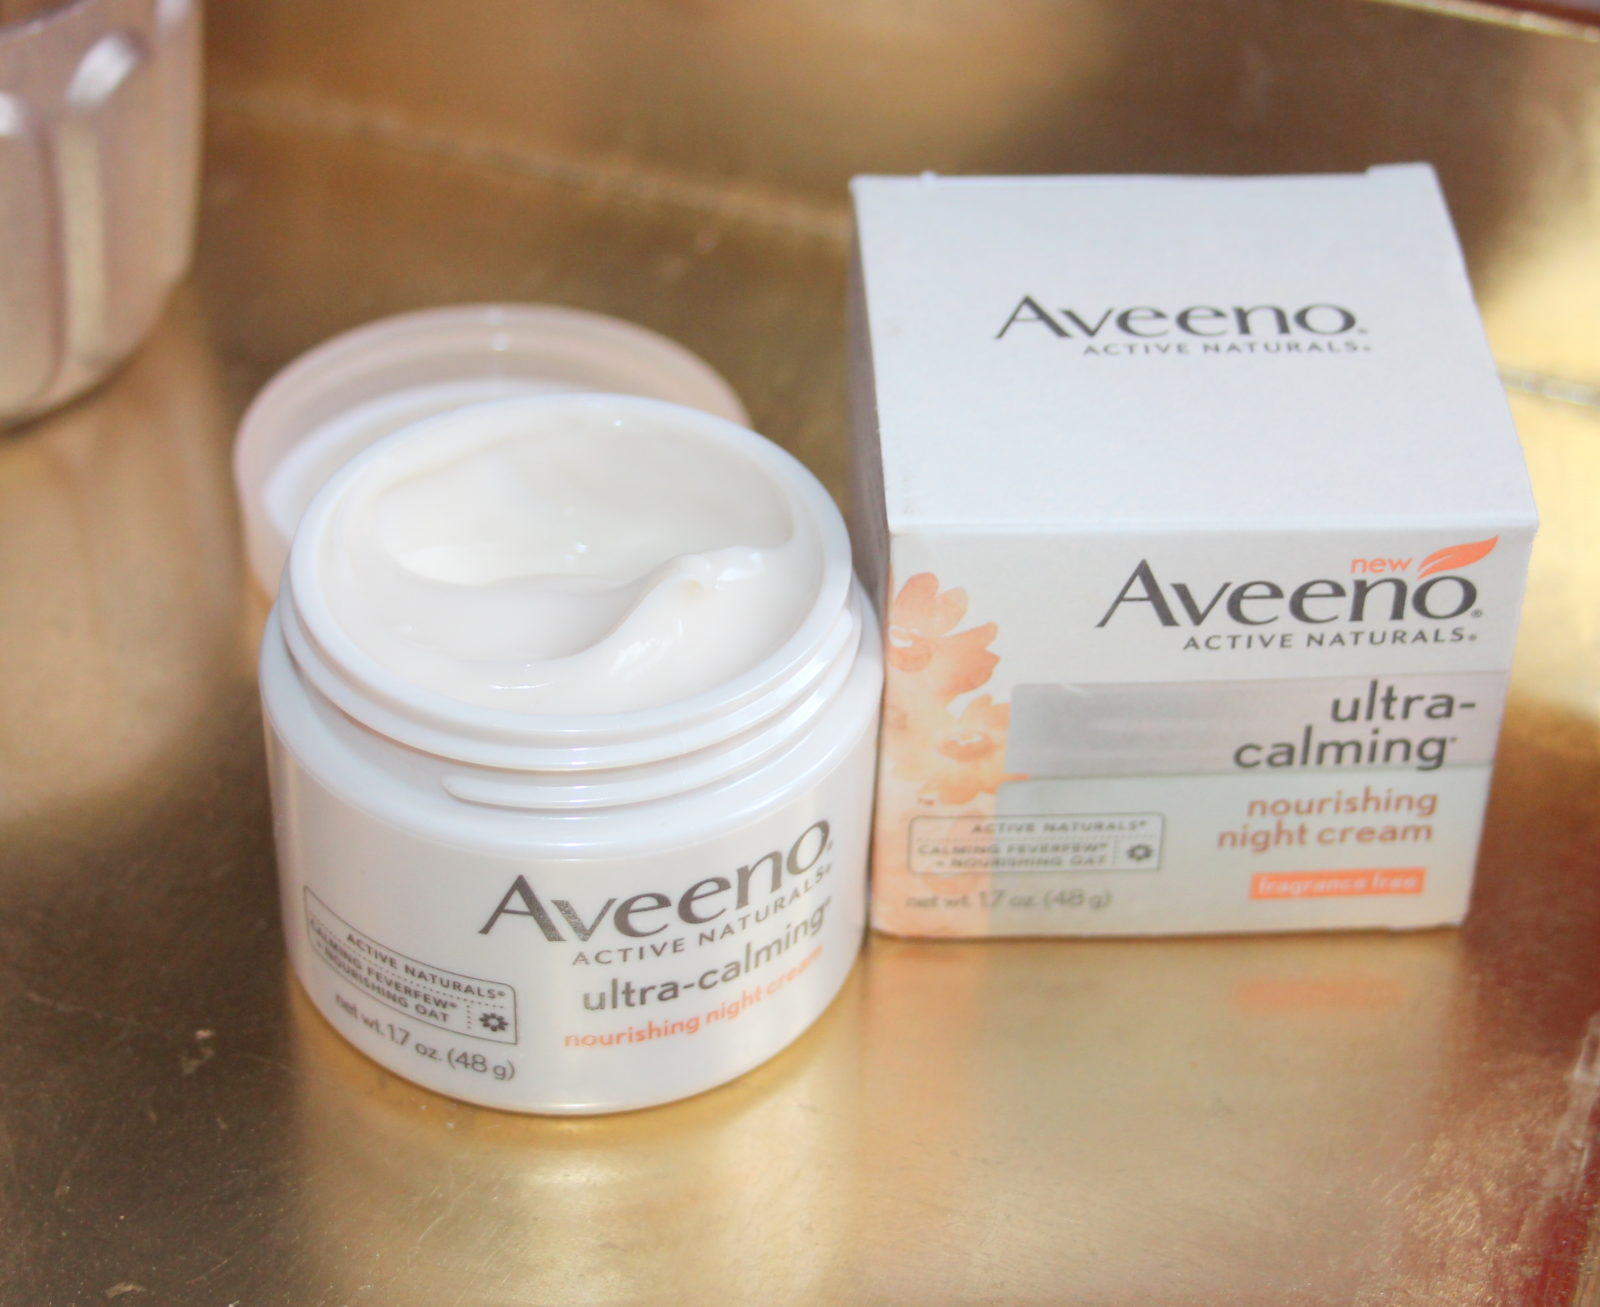 Aveeno Ultra Calming Night Cream